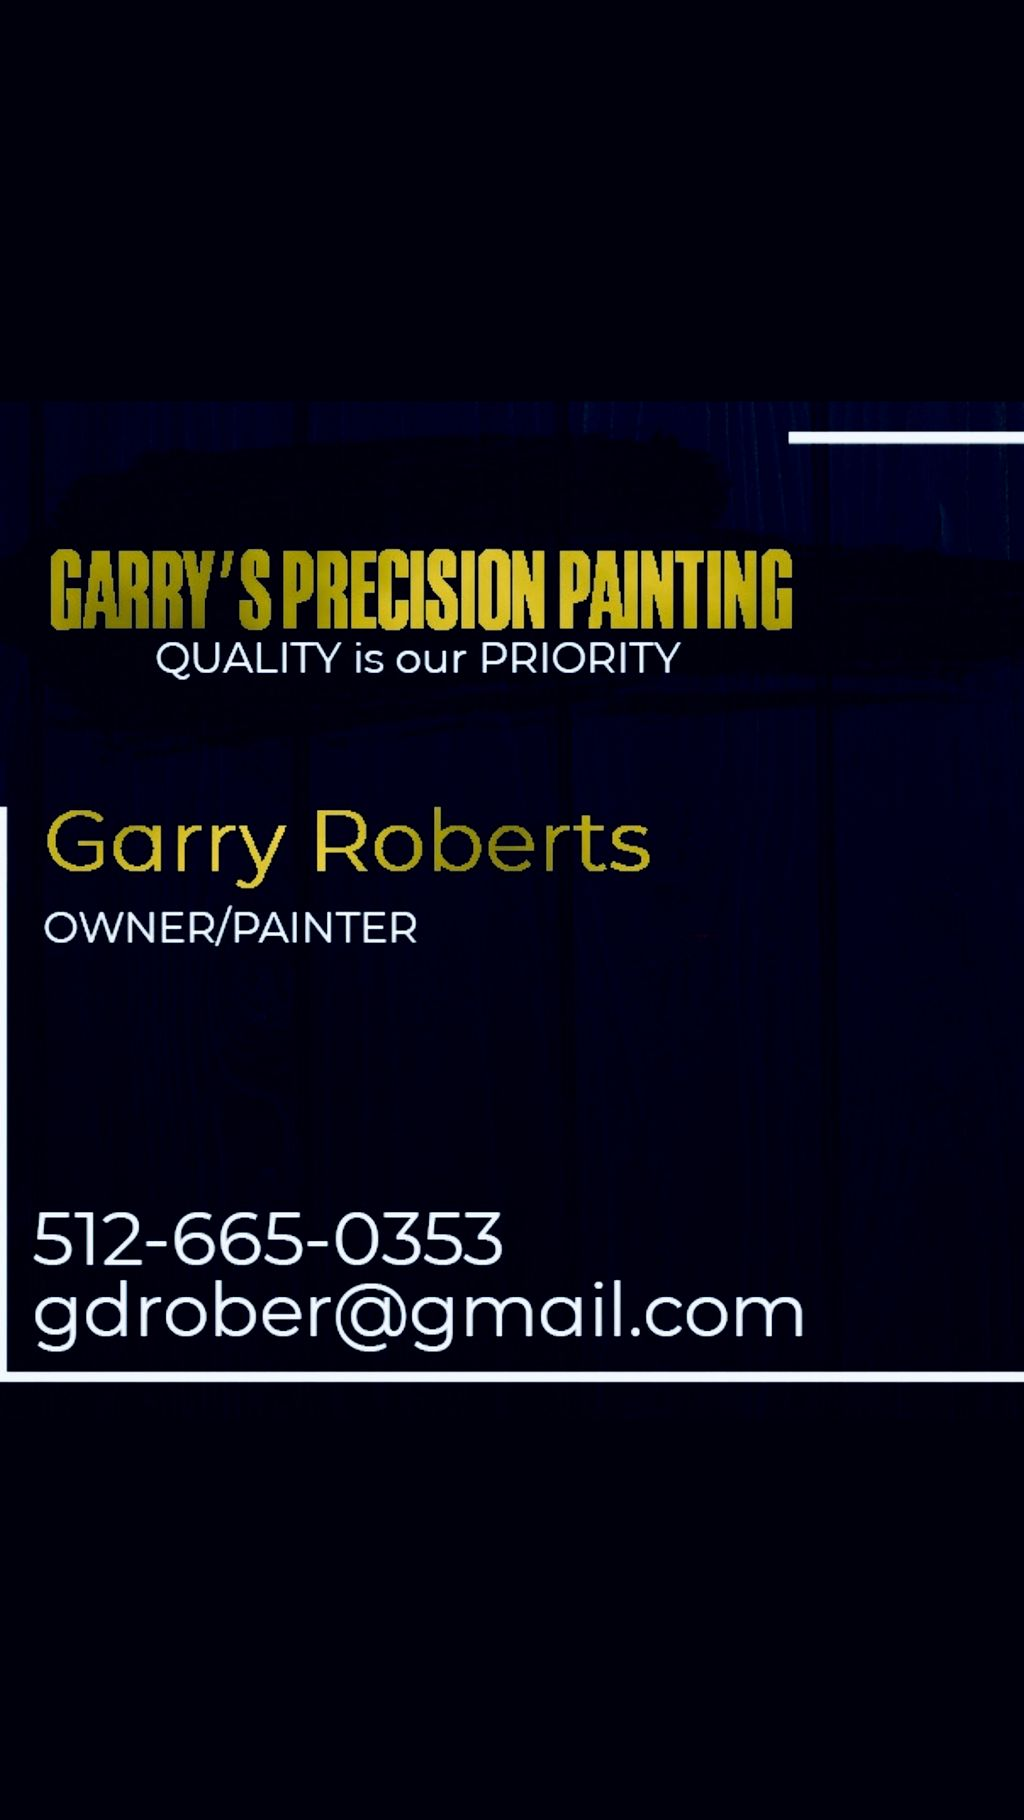 Garry's Precision Painting